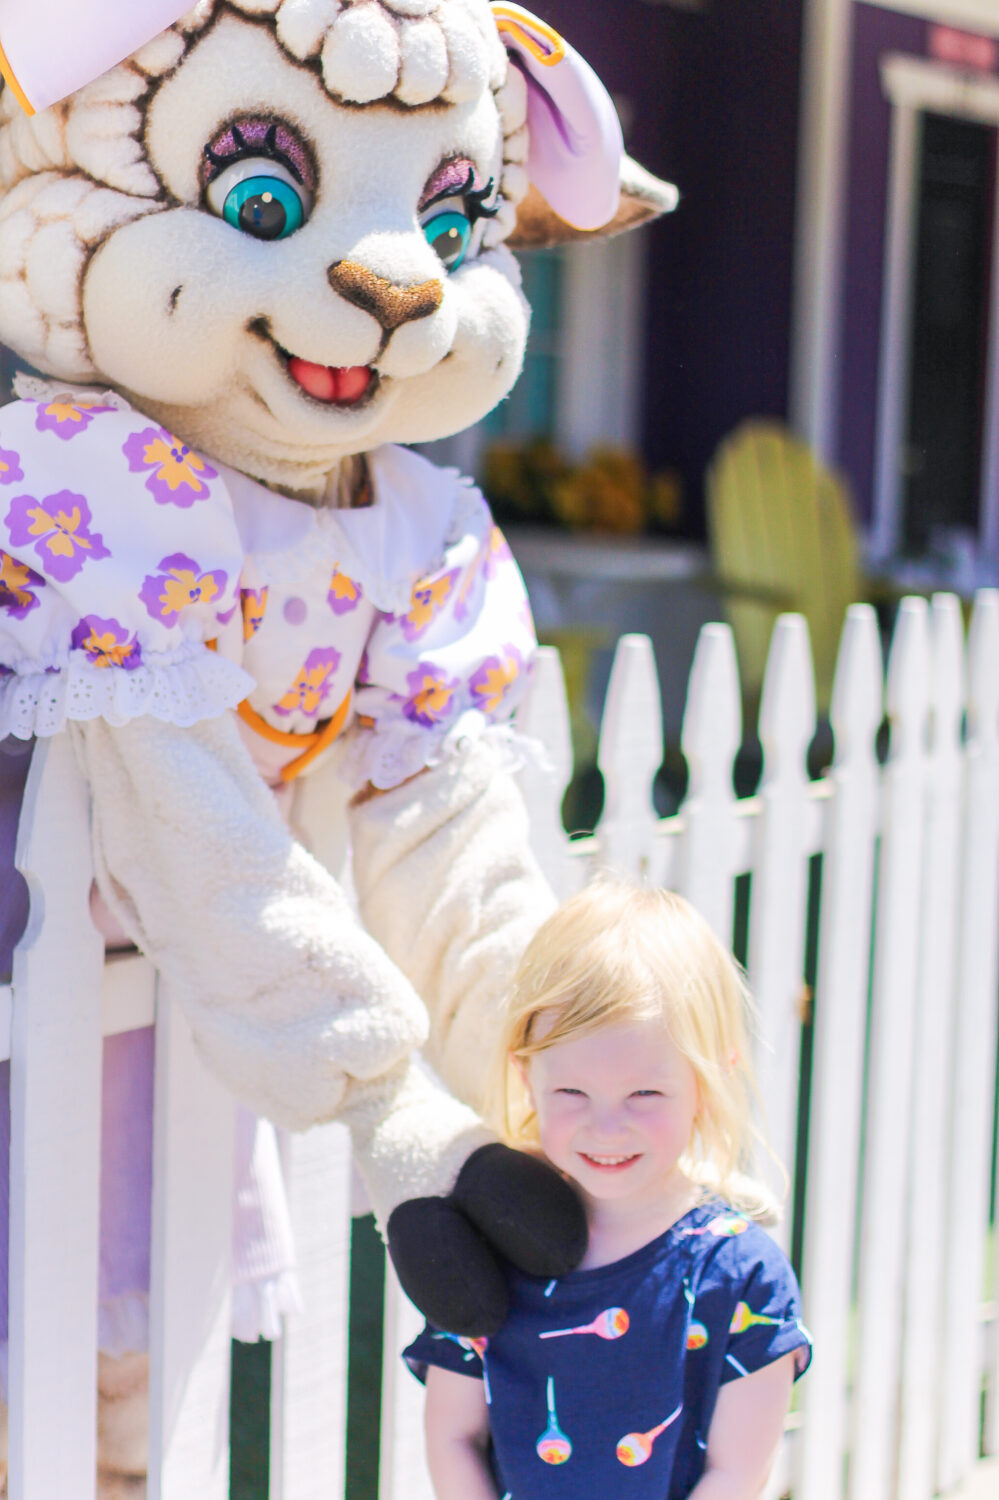 Heading to the Los Angeles County Fair? We just went, and I'm sharing our favorite activities for preschoolers and toddlers!